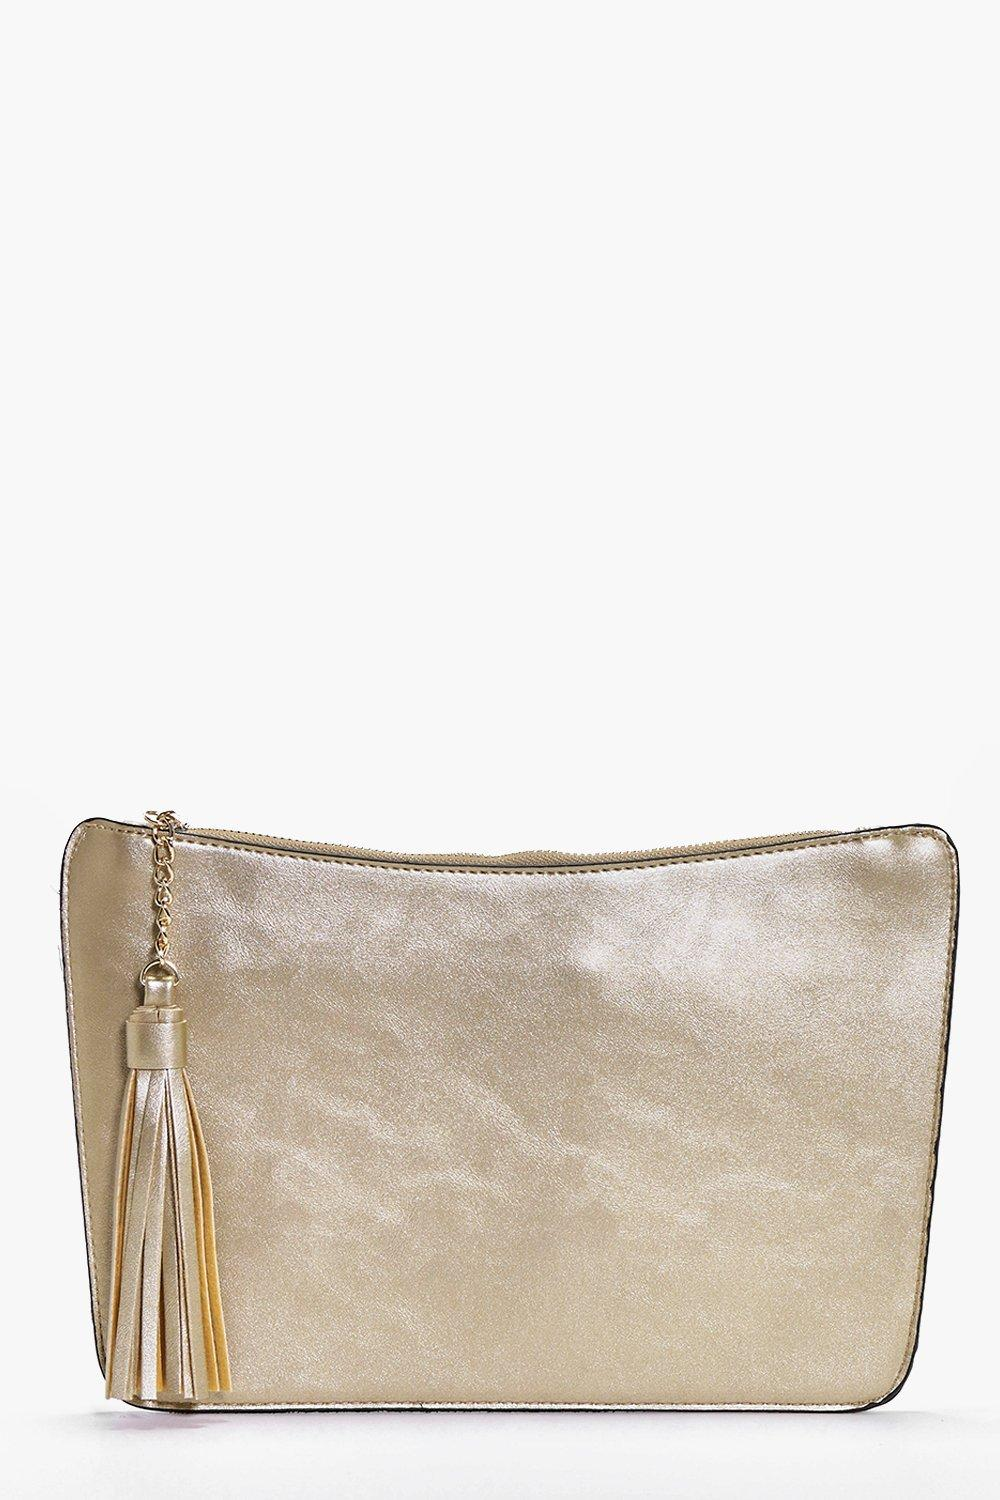 Curve Zip Tassel Clutch Bag gold